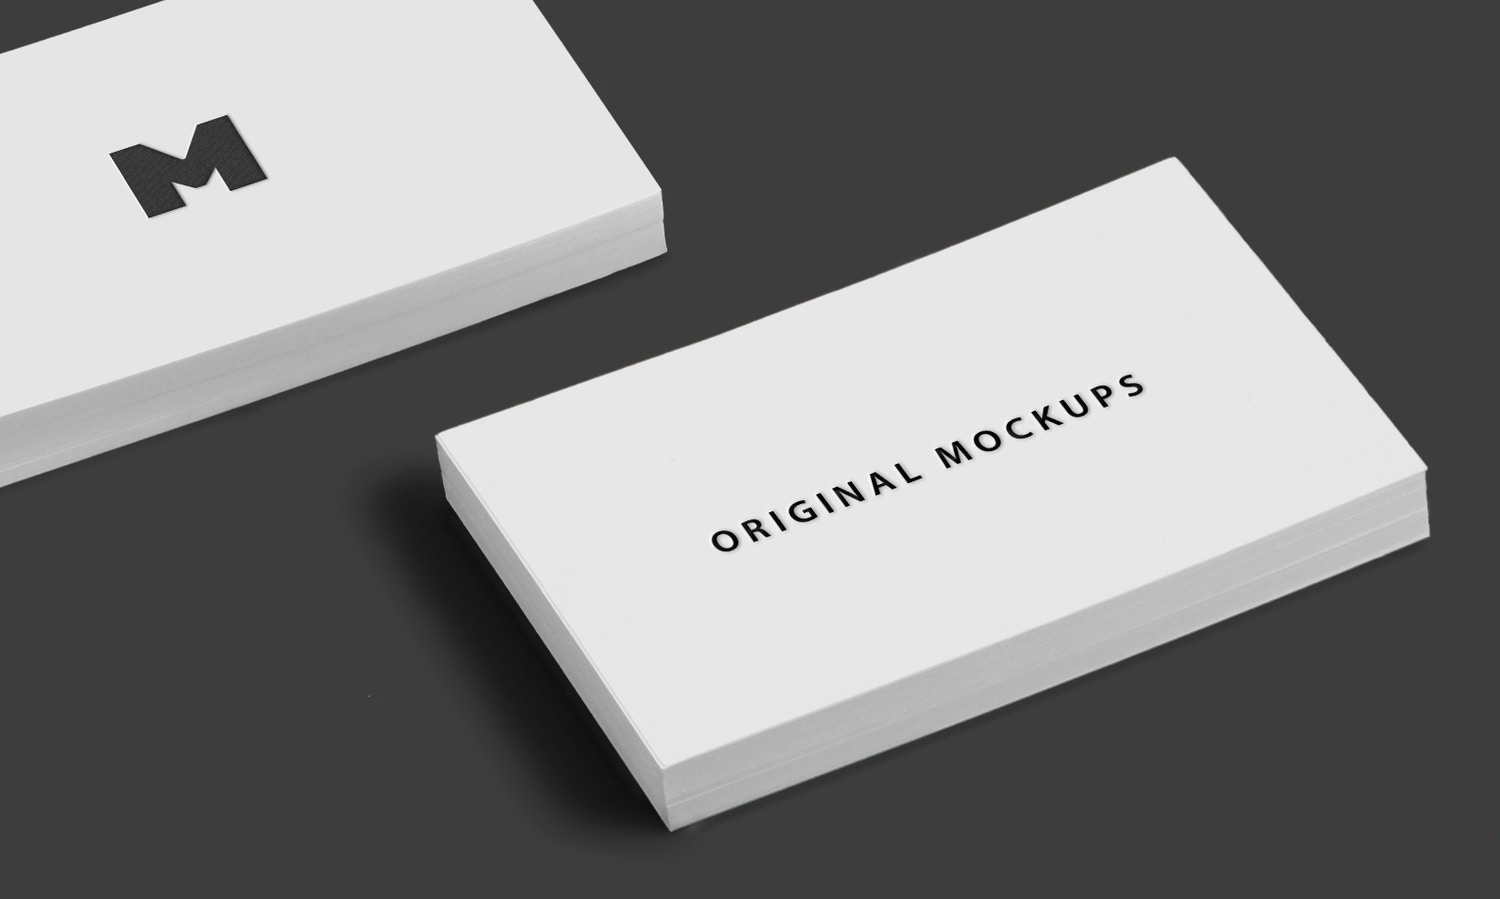 Business card mockup 03 original mockups business card mockup 03 by original mockups on original mockups colourmoves